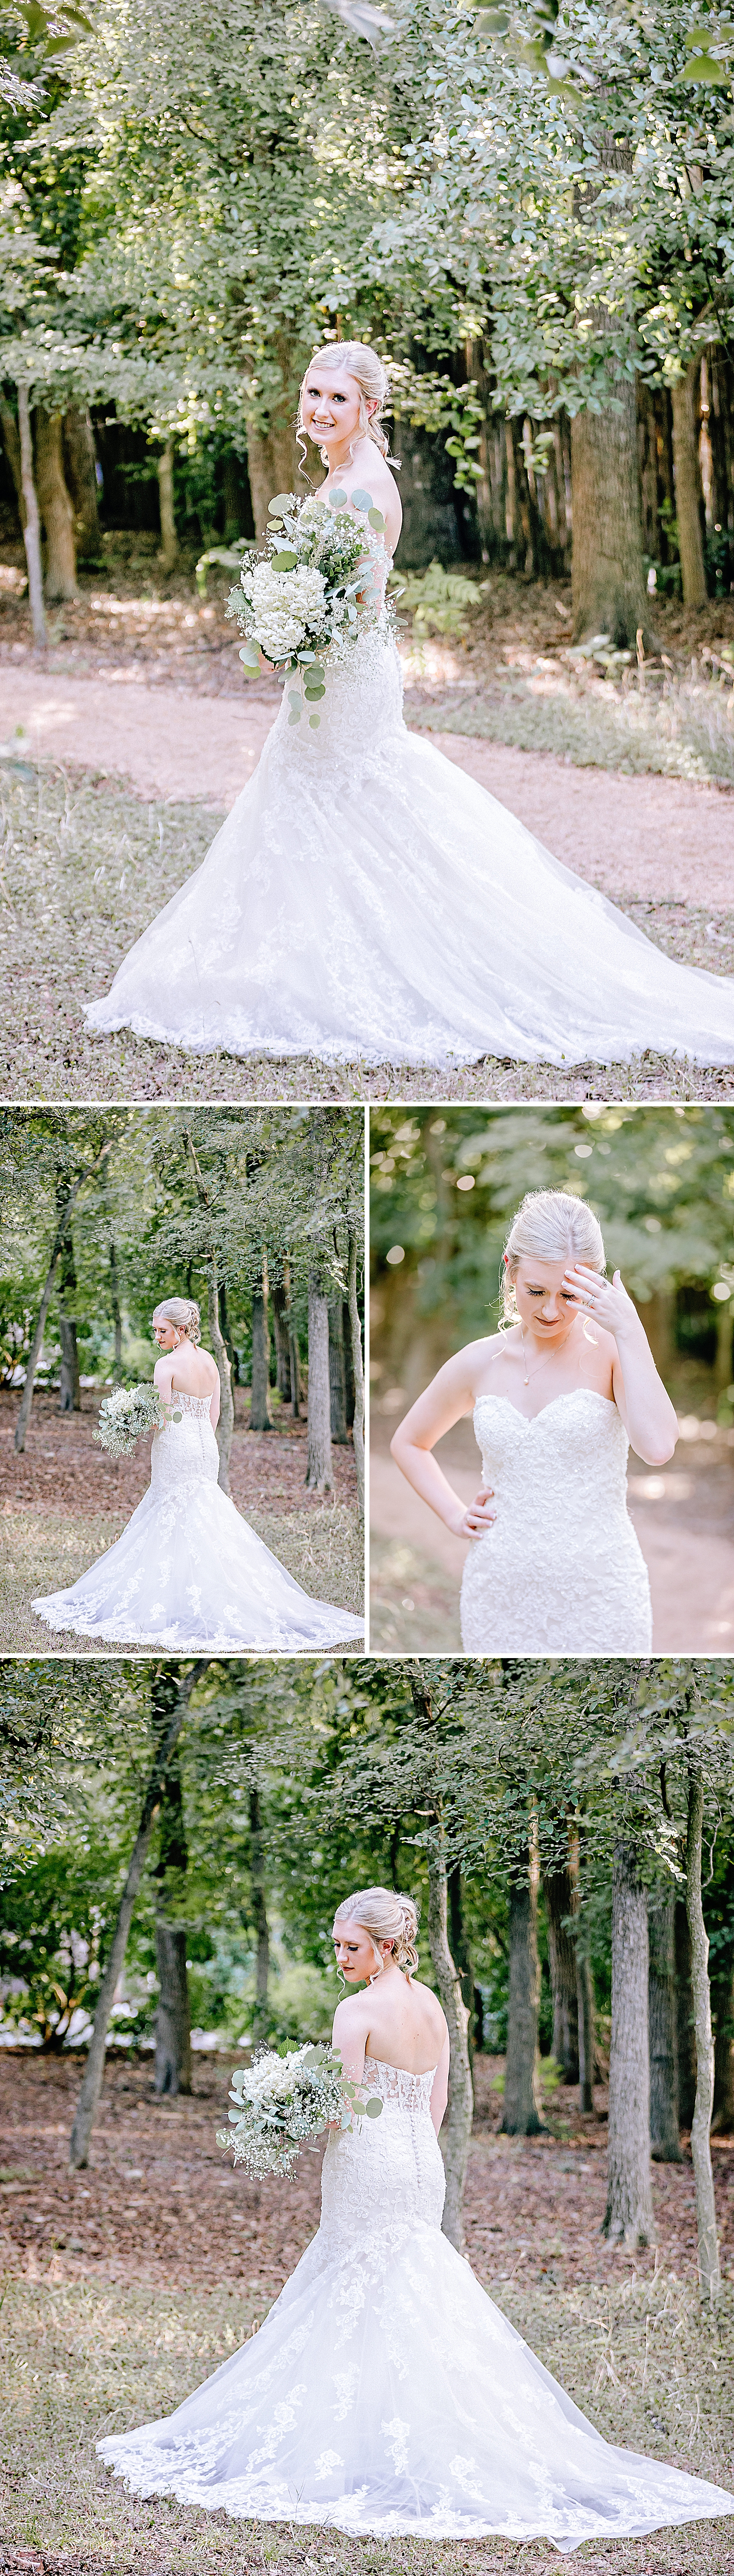 Carly-Barton-Photography-Bridal-Photos-Gruene-Rustic-New-Braunfels-Wedding-Photographer_0008.jpg